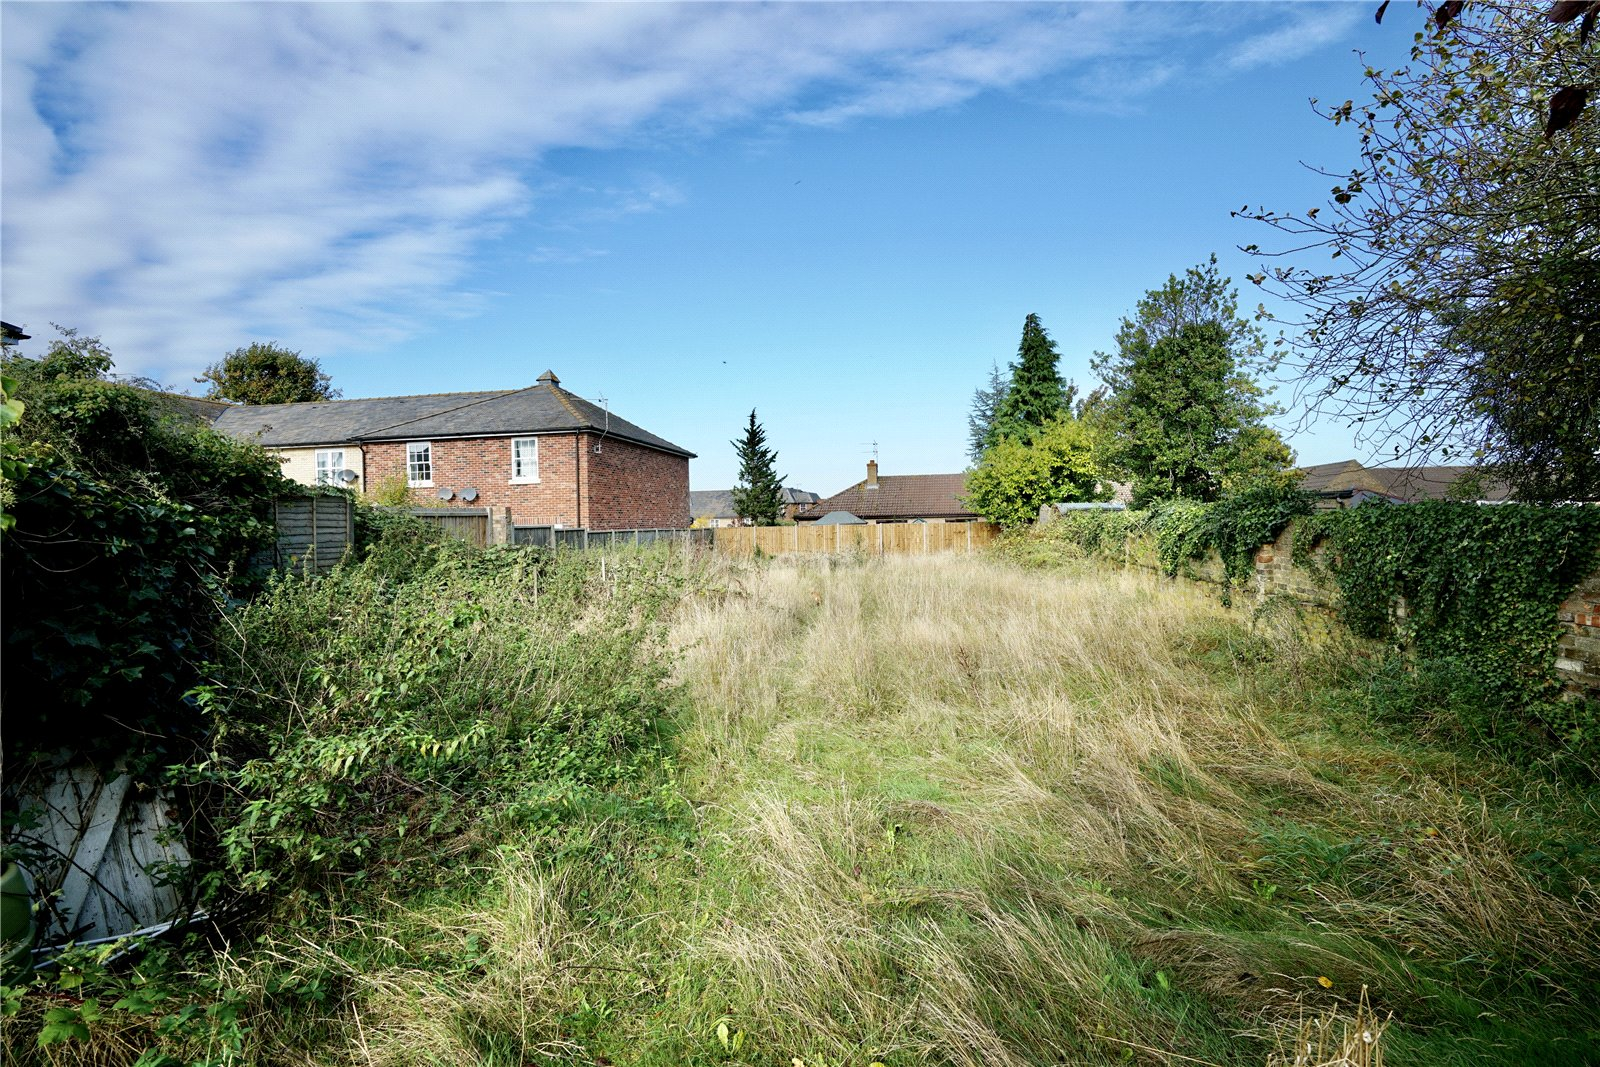 Land (residential) for sale in Sutton, CB6 2RB - Property Image 1